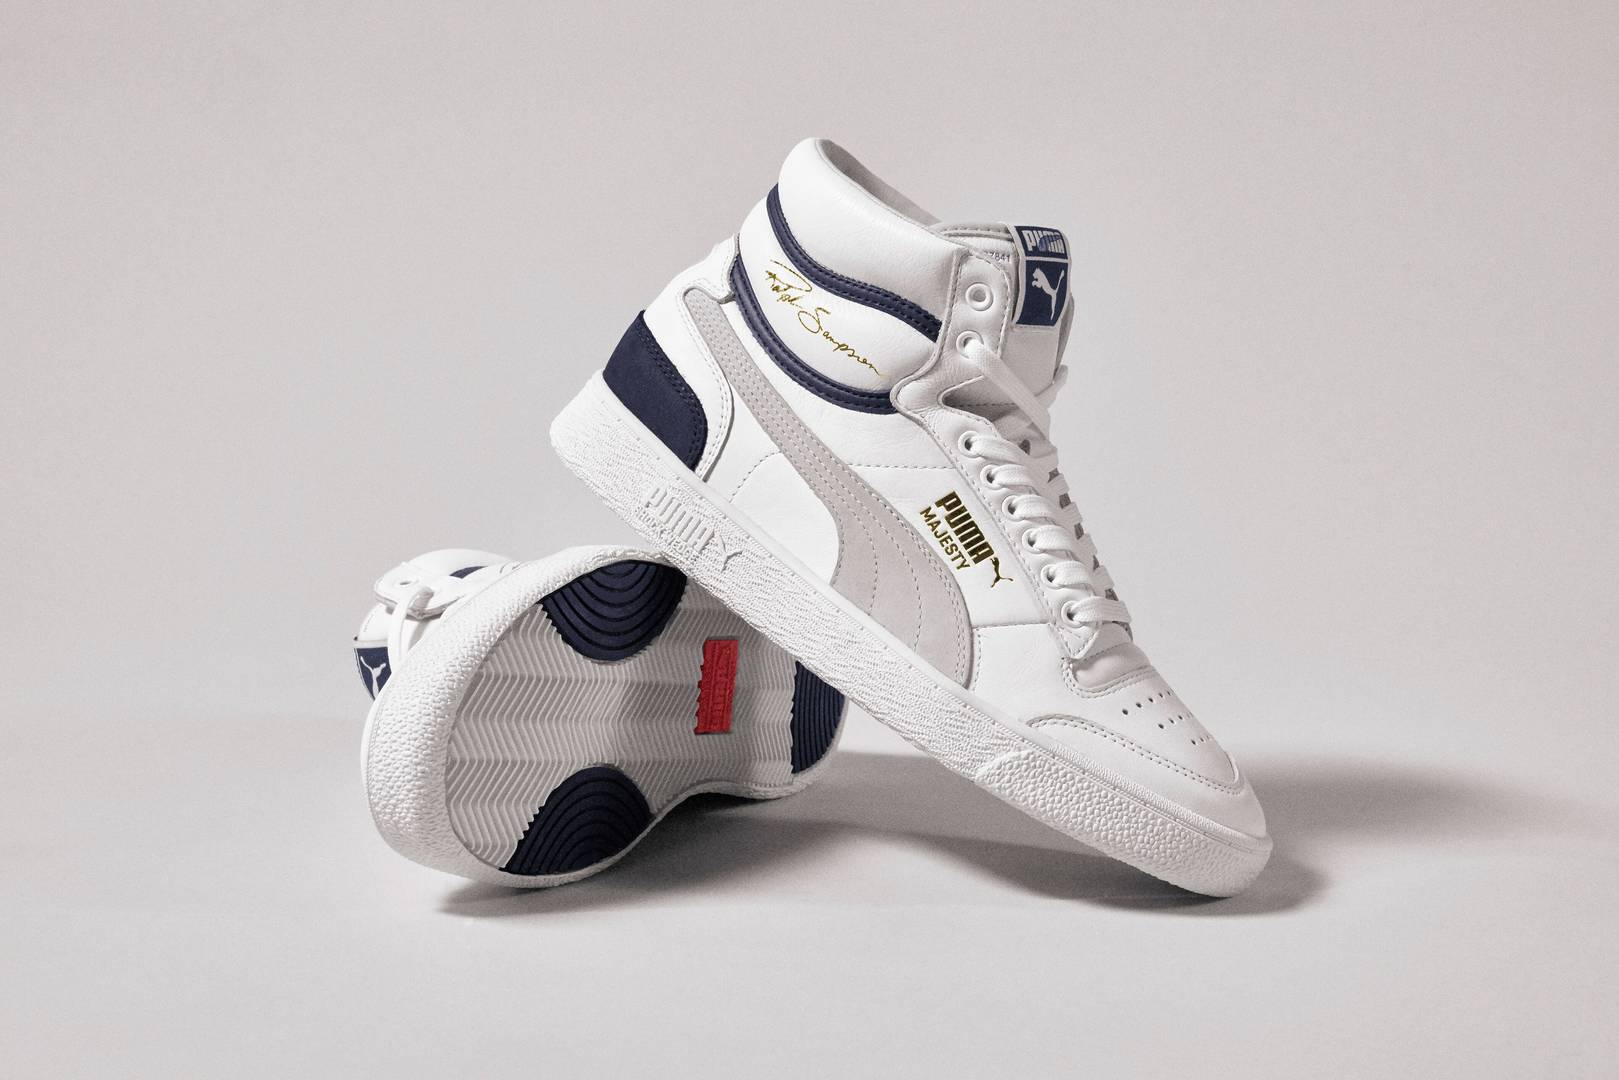 f9e0be54040f PUMA Announces Return Of The Ralph Sampson OG  Release Details ...